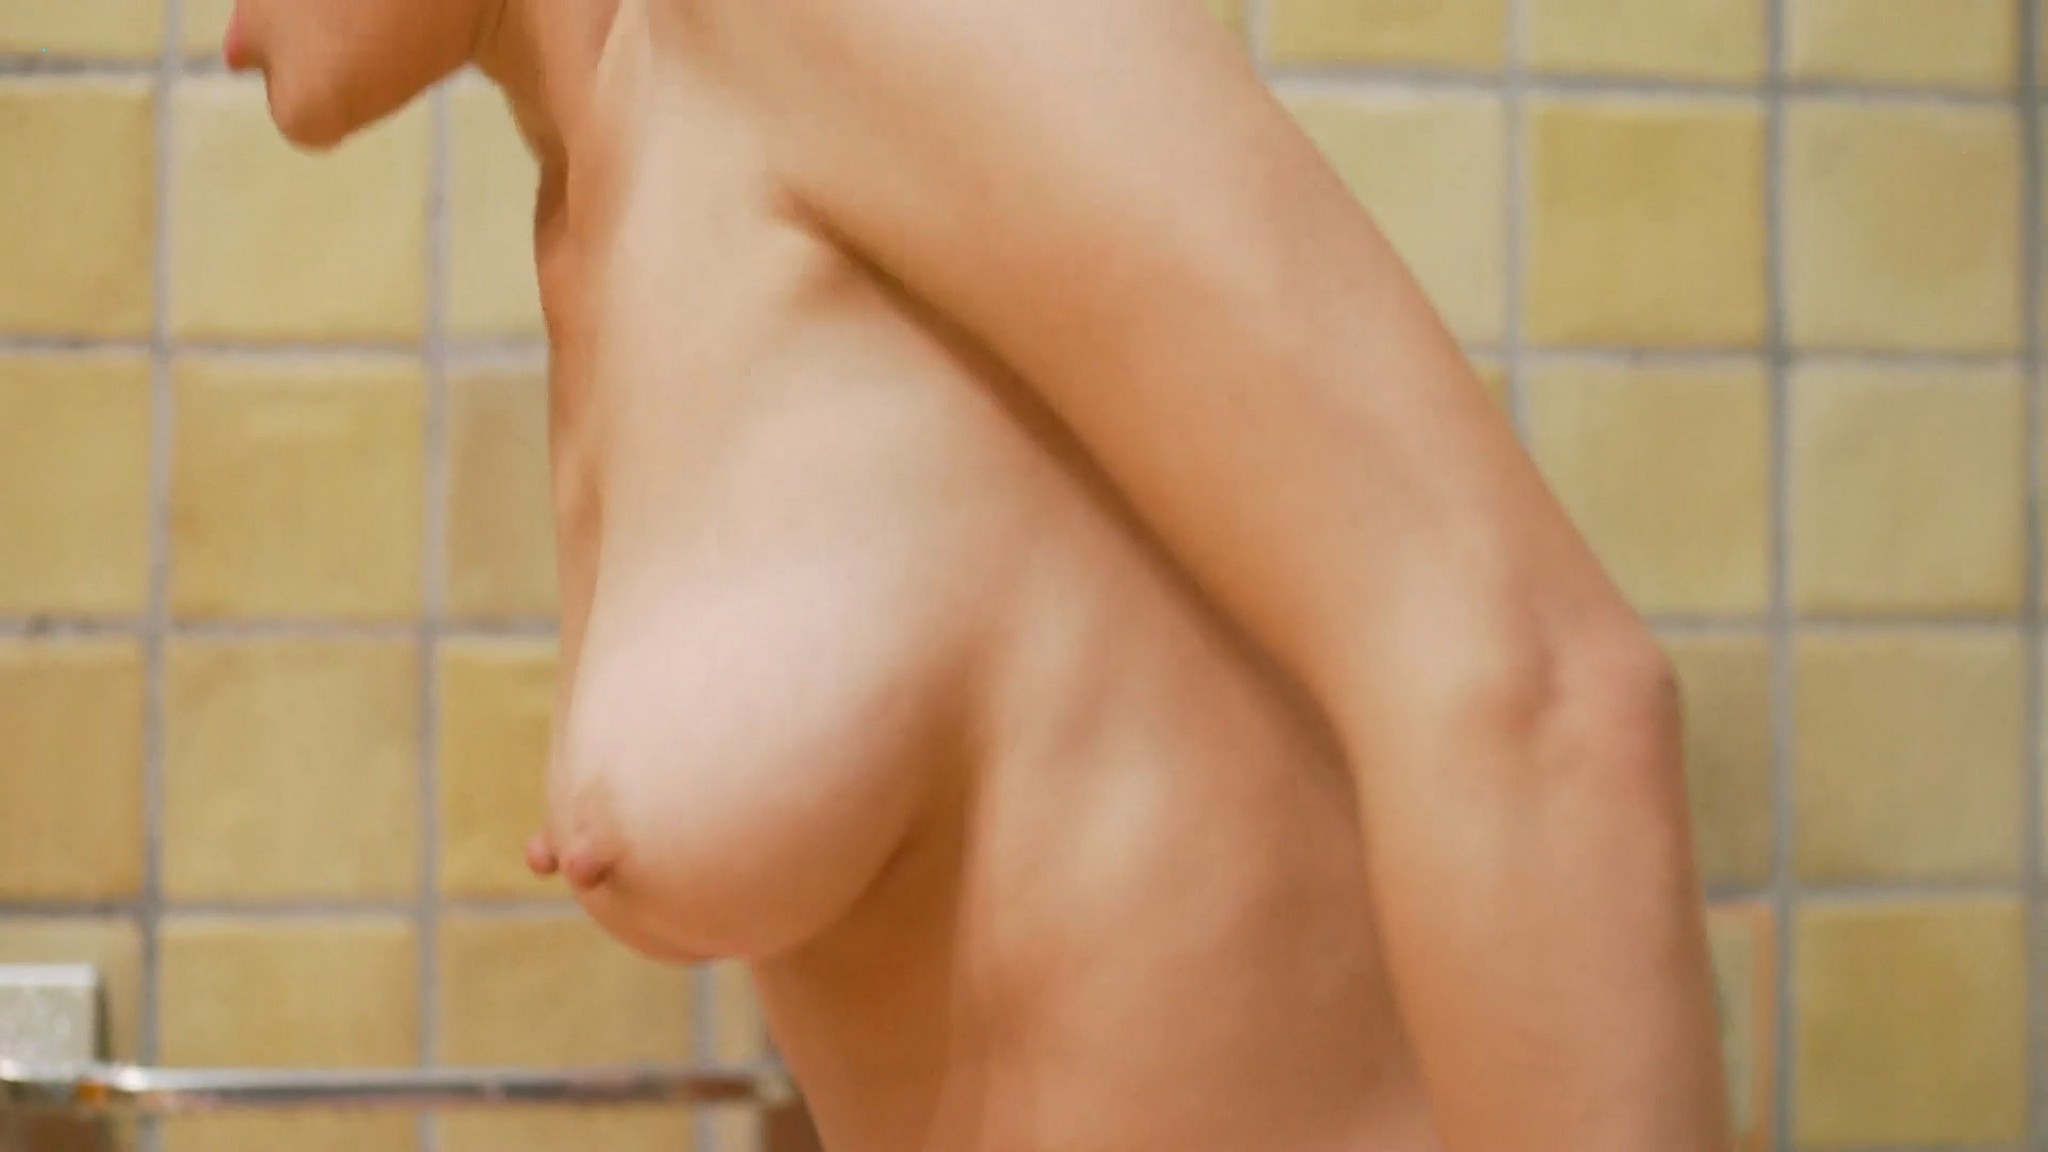 Carole Le Page nude full frontal Sophie Letourneur Lolita Chammah nude too Les coquillettes FR 2012 1080p Web 8